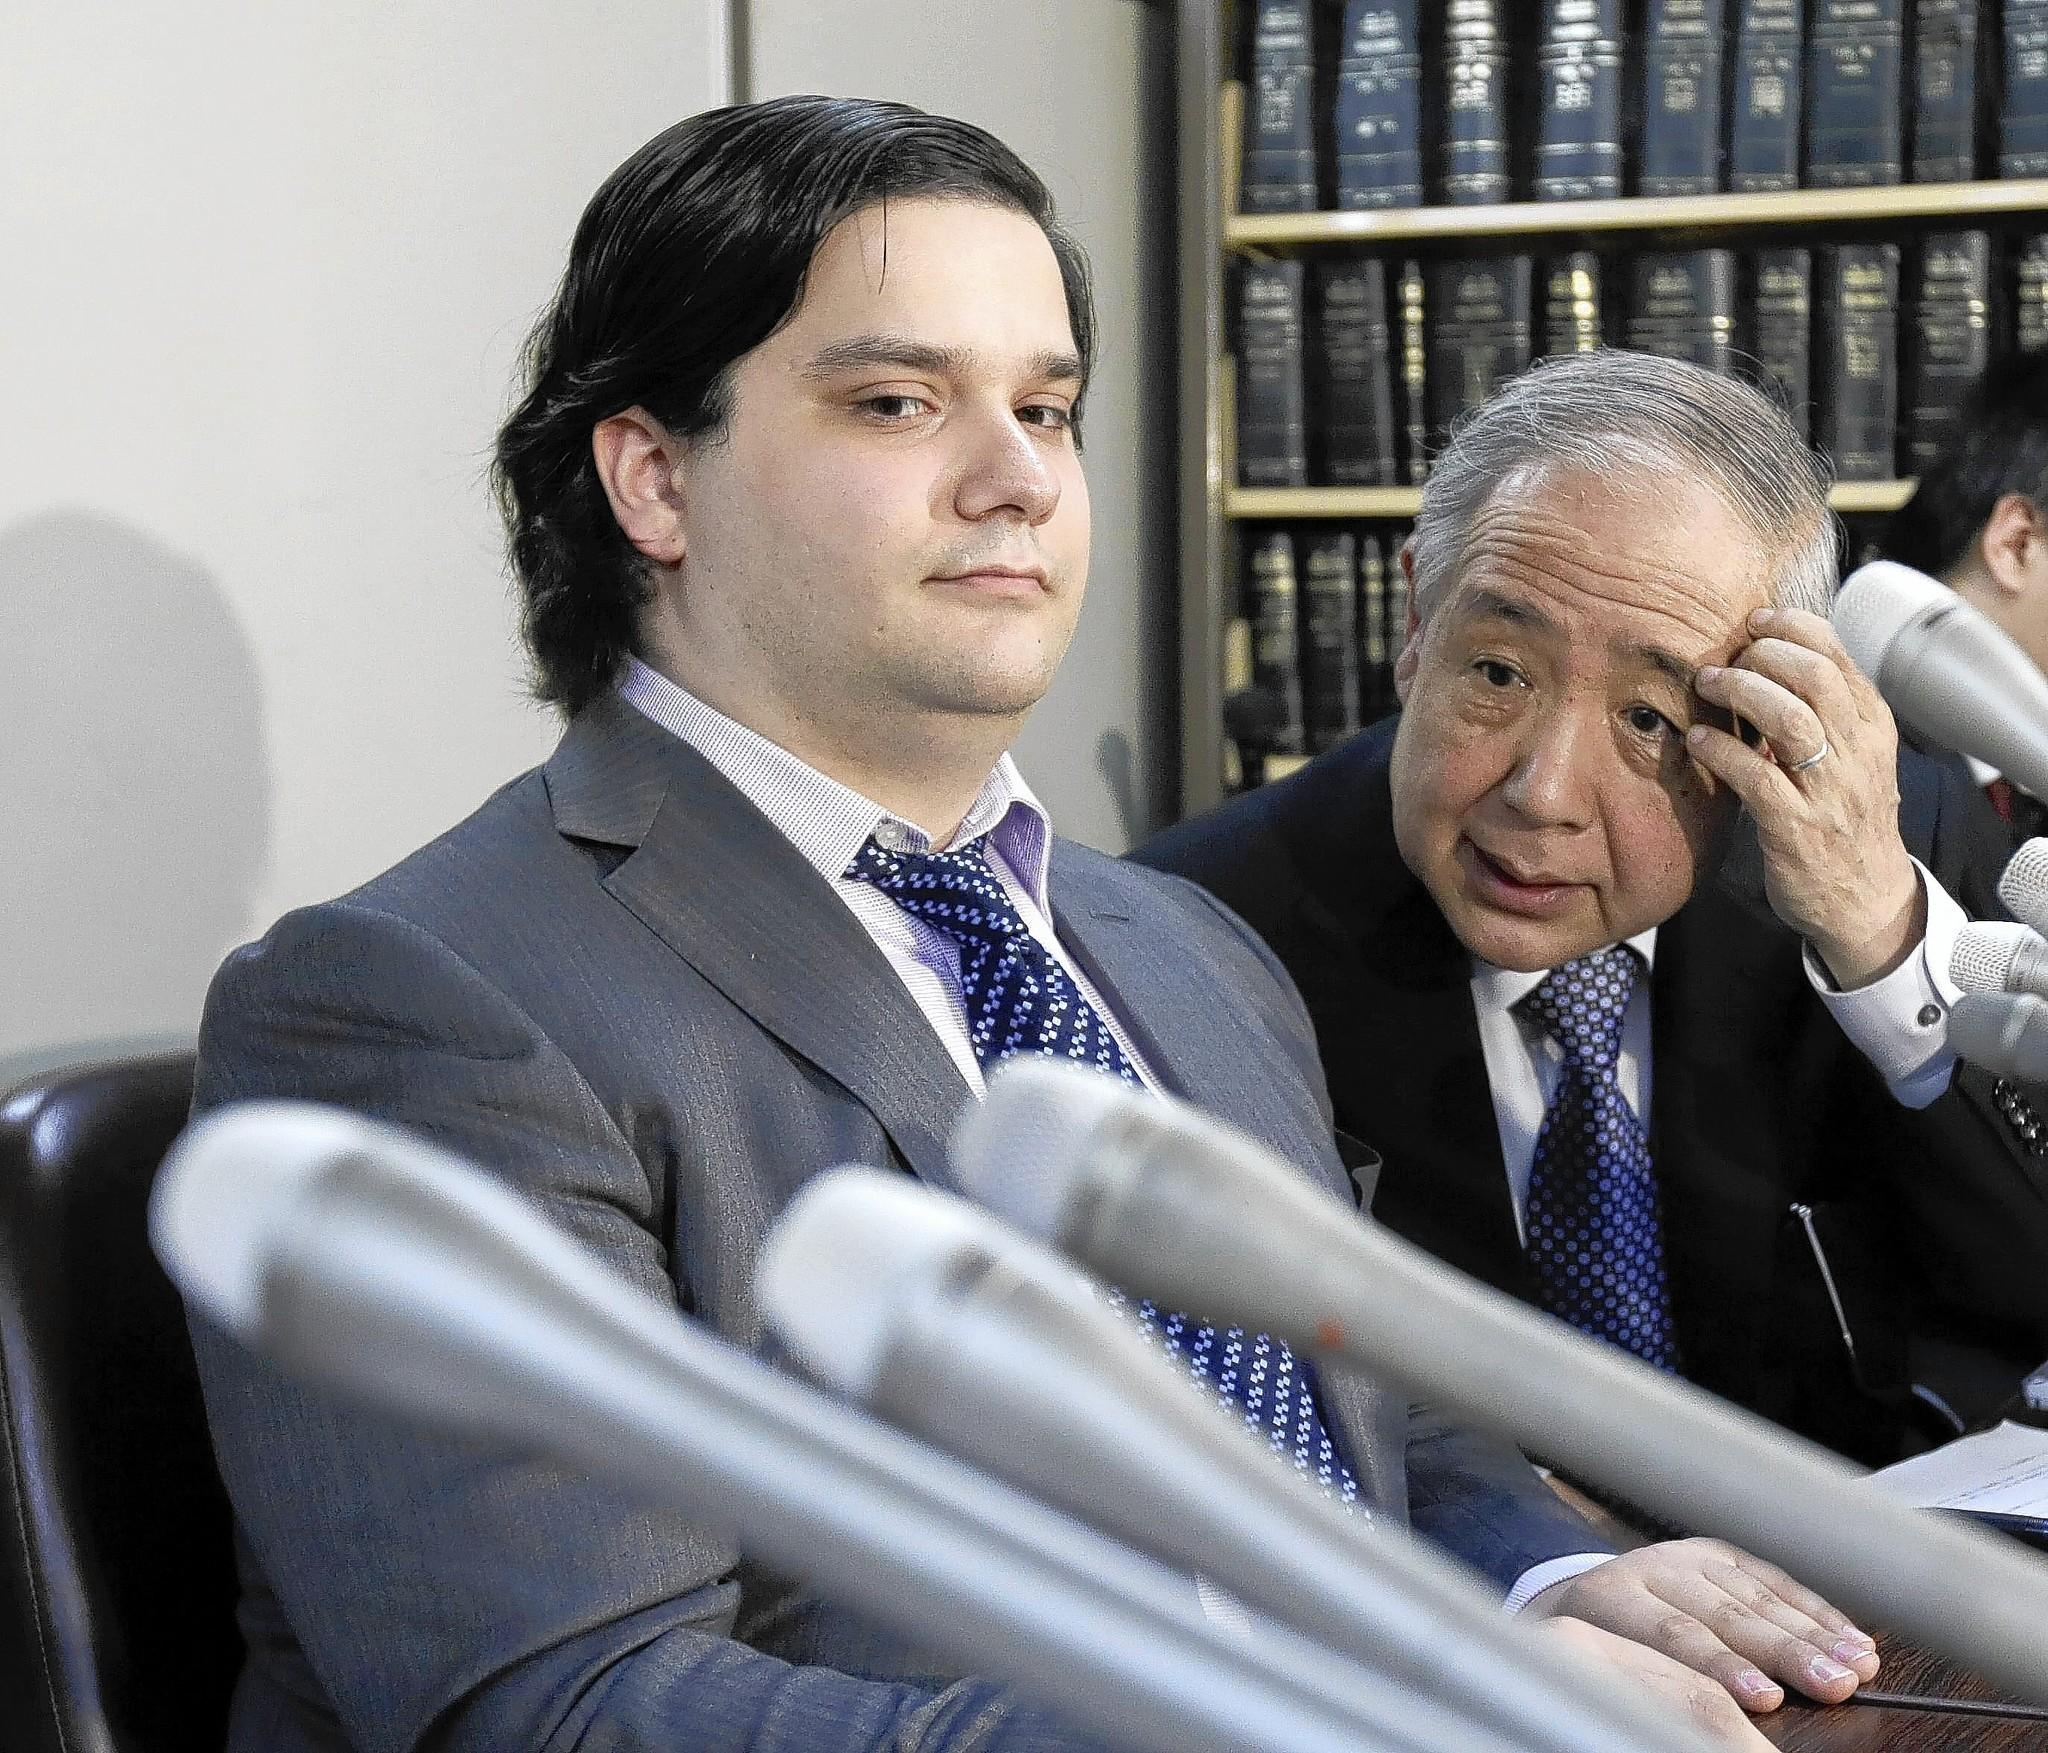 Mark Karpeles, left, is CEO of Mt. Gox in Tokyo, the world's largest exchange for trading bitcoins. Mt. Gox shut down last month, triggering a massive sell-off and sending away many prospective investors.